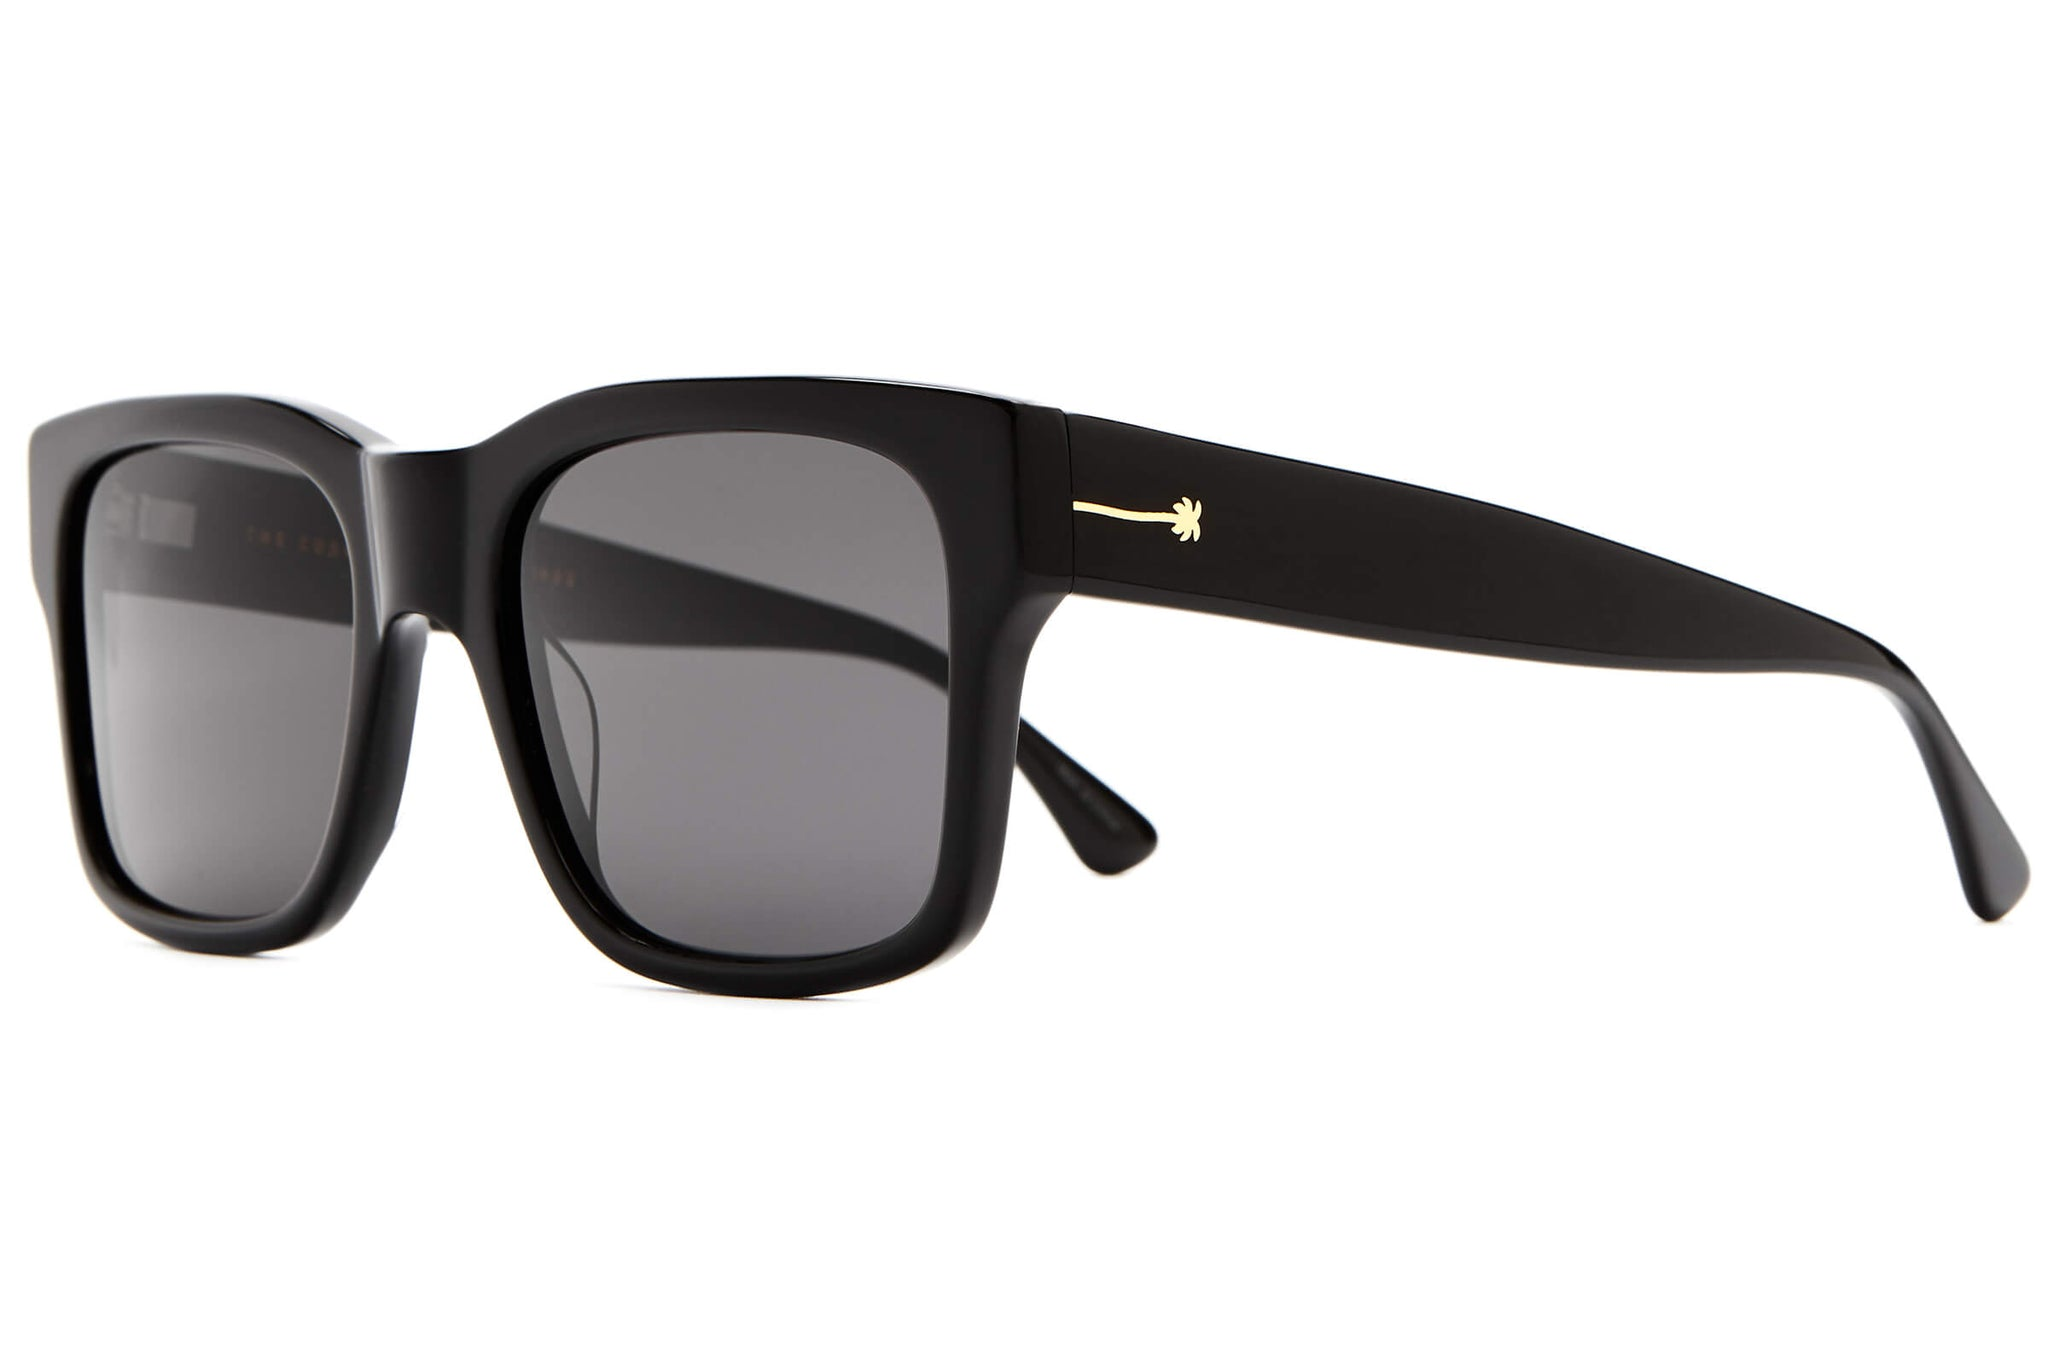 The Cosmic Freeway - Black - / Grey - Sunglasses